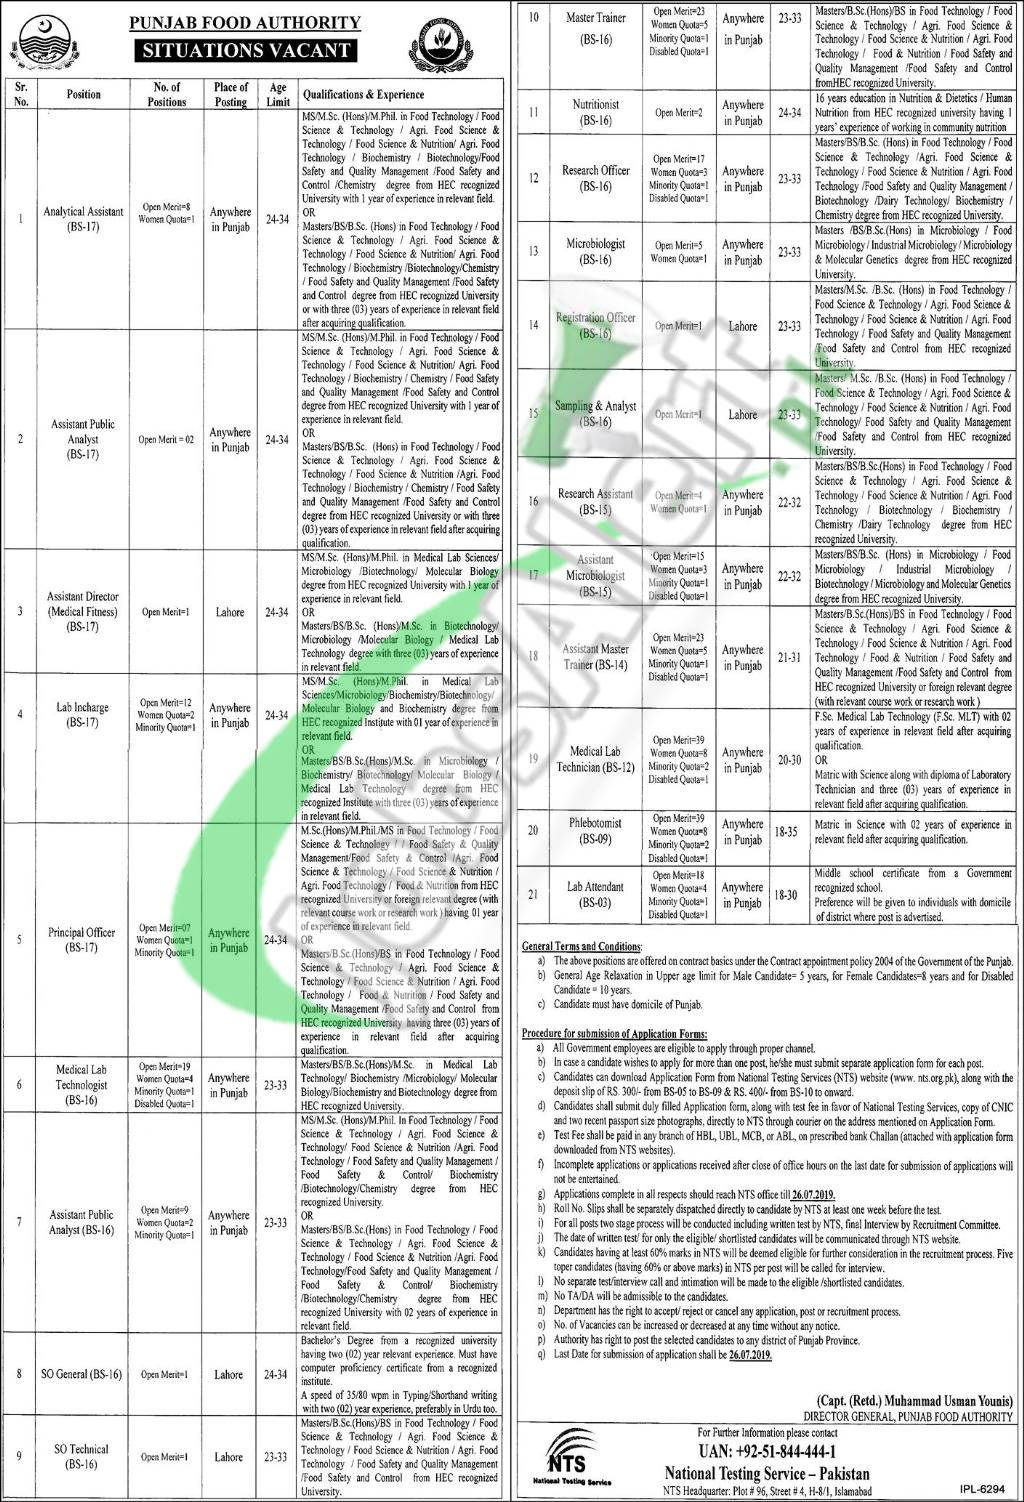 PFA Jobs 2019 Punjab Food Authority Current Employment Opportunities